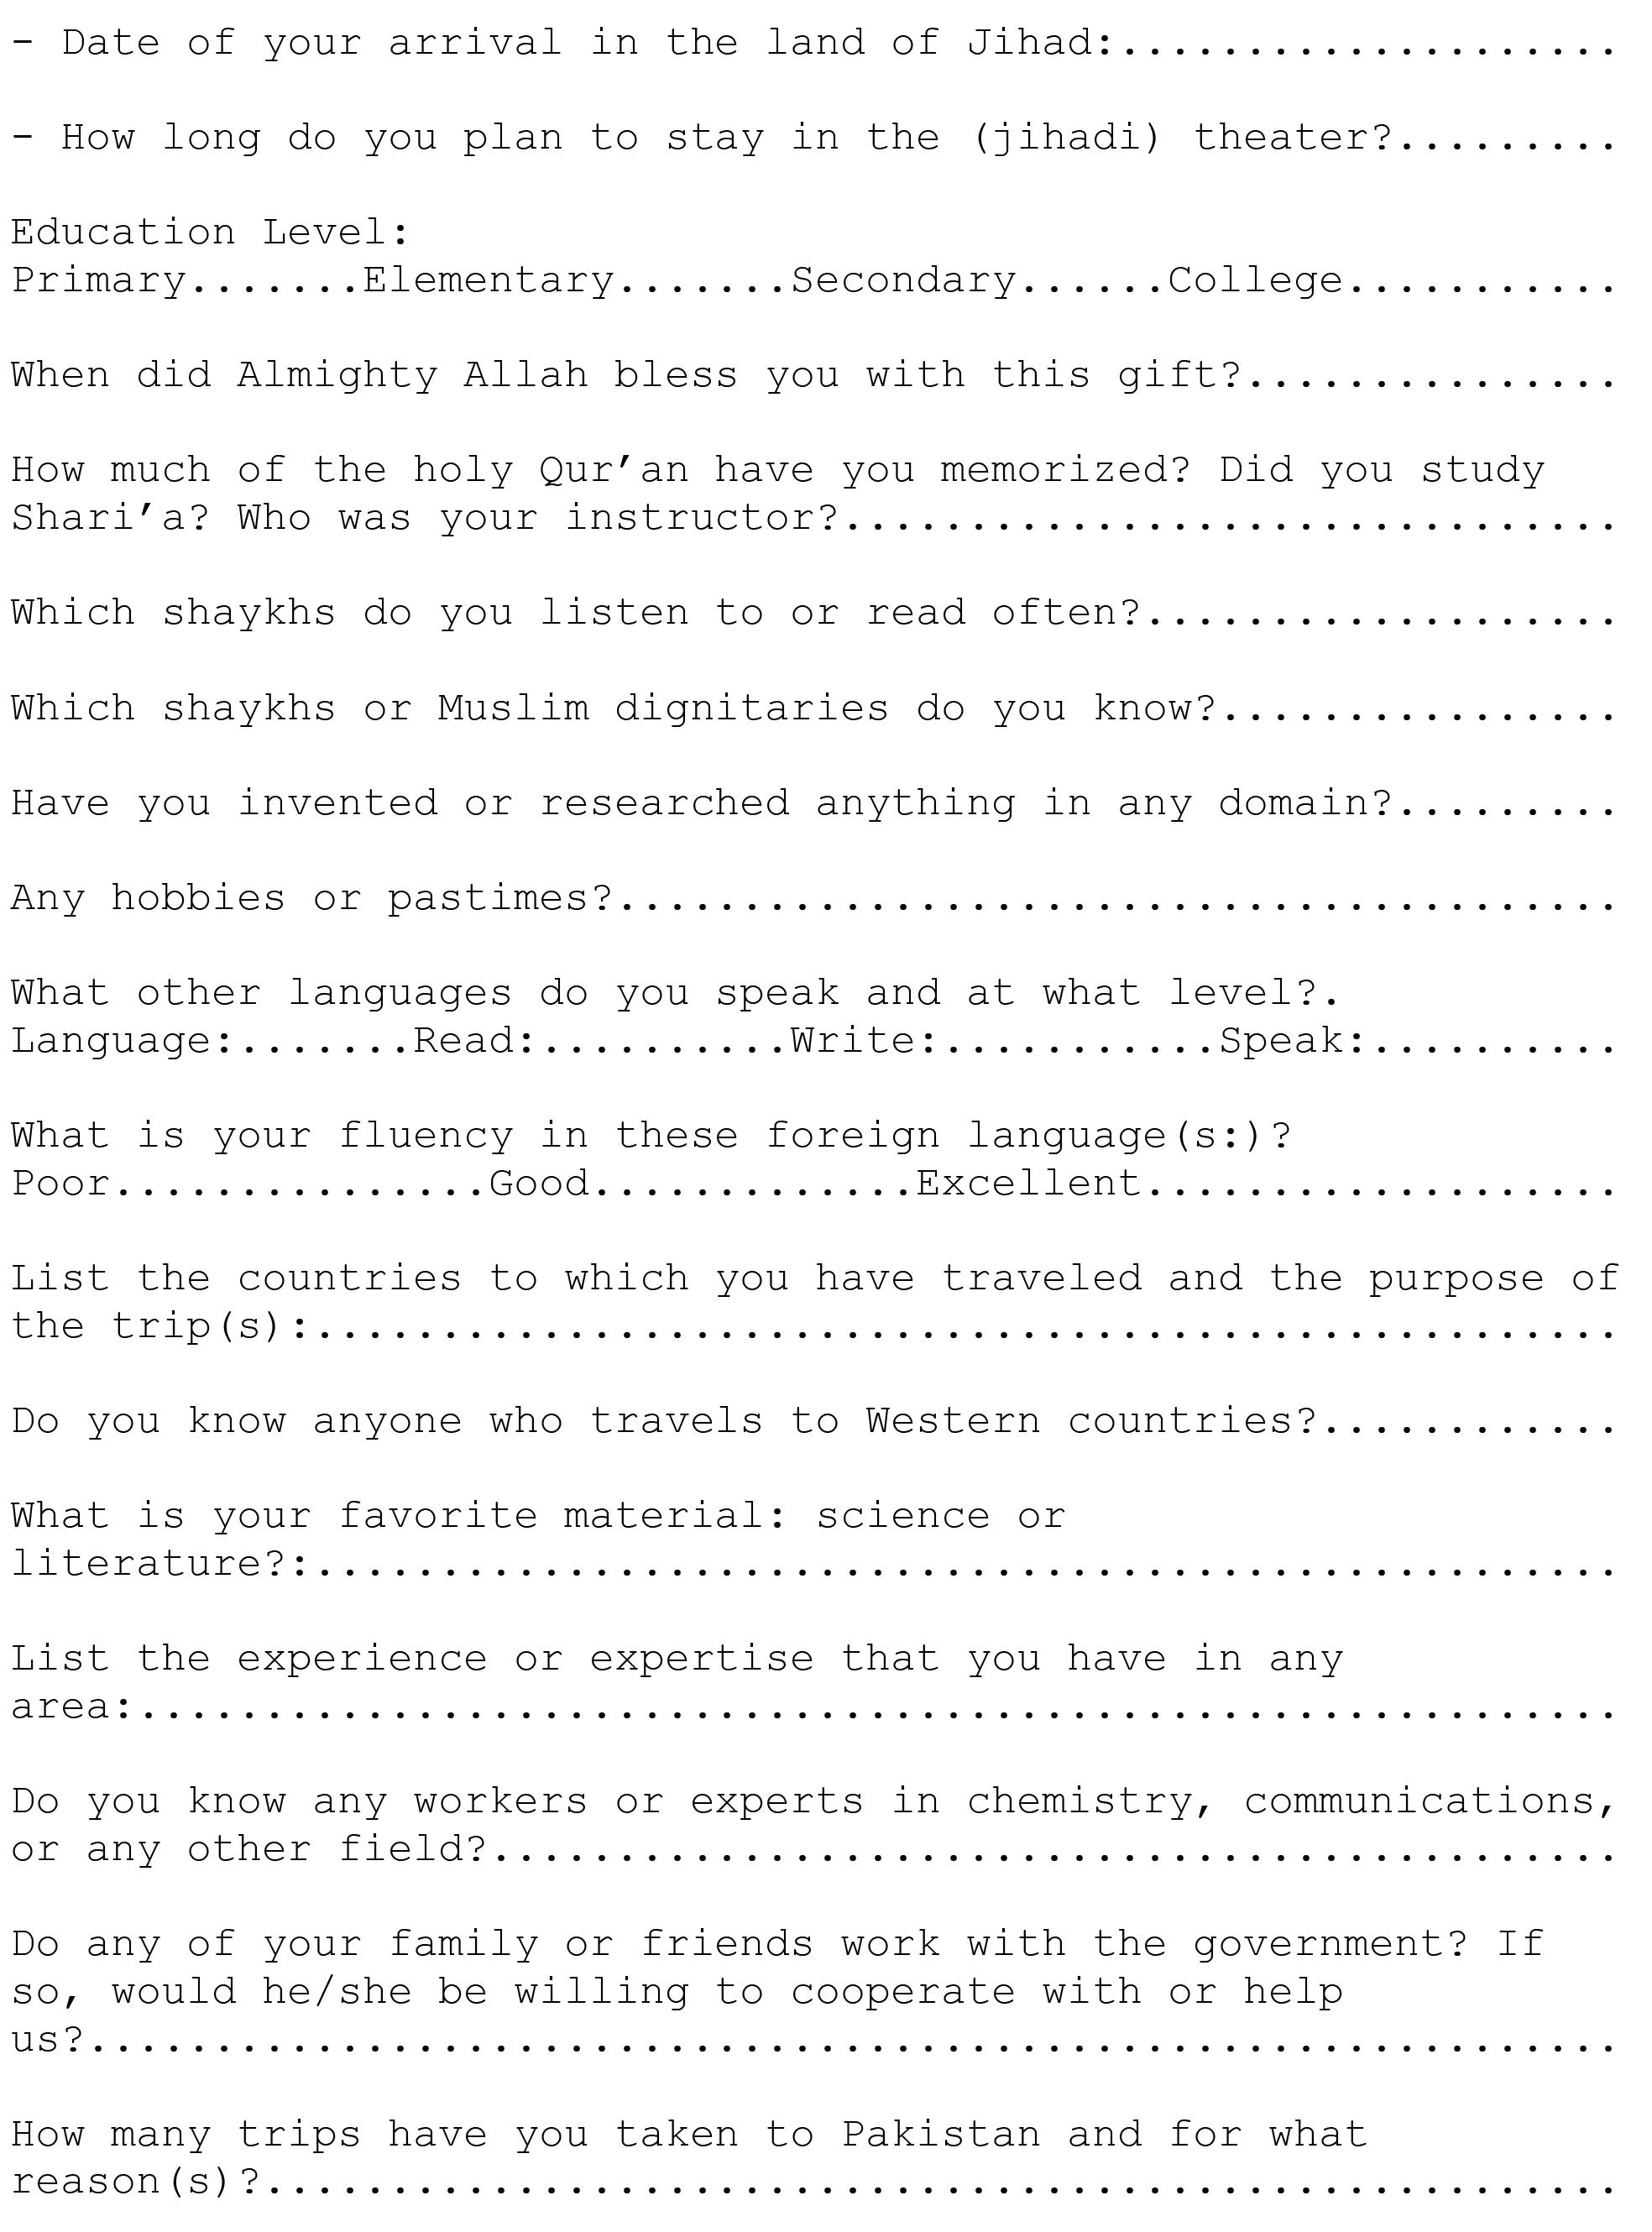 instructions to applicants 2 Ever Wondered What An Al Qaeda Job Application Form Looks Like?